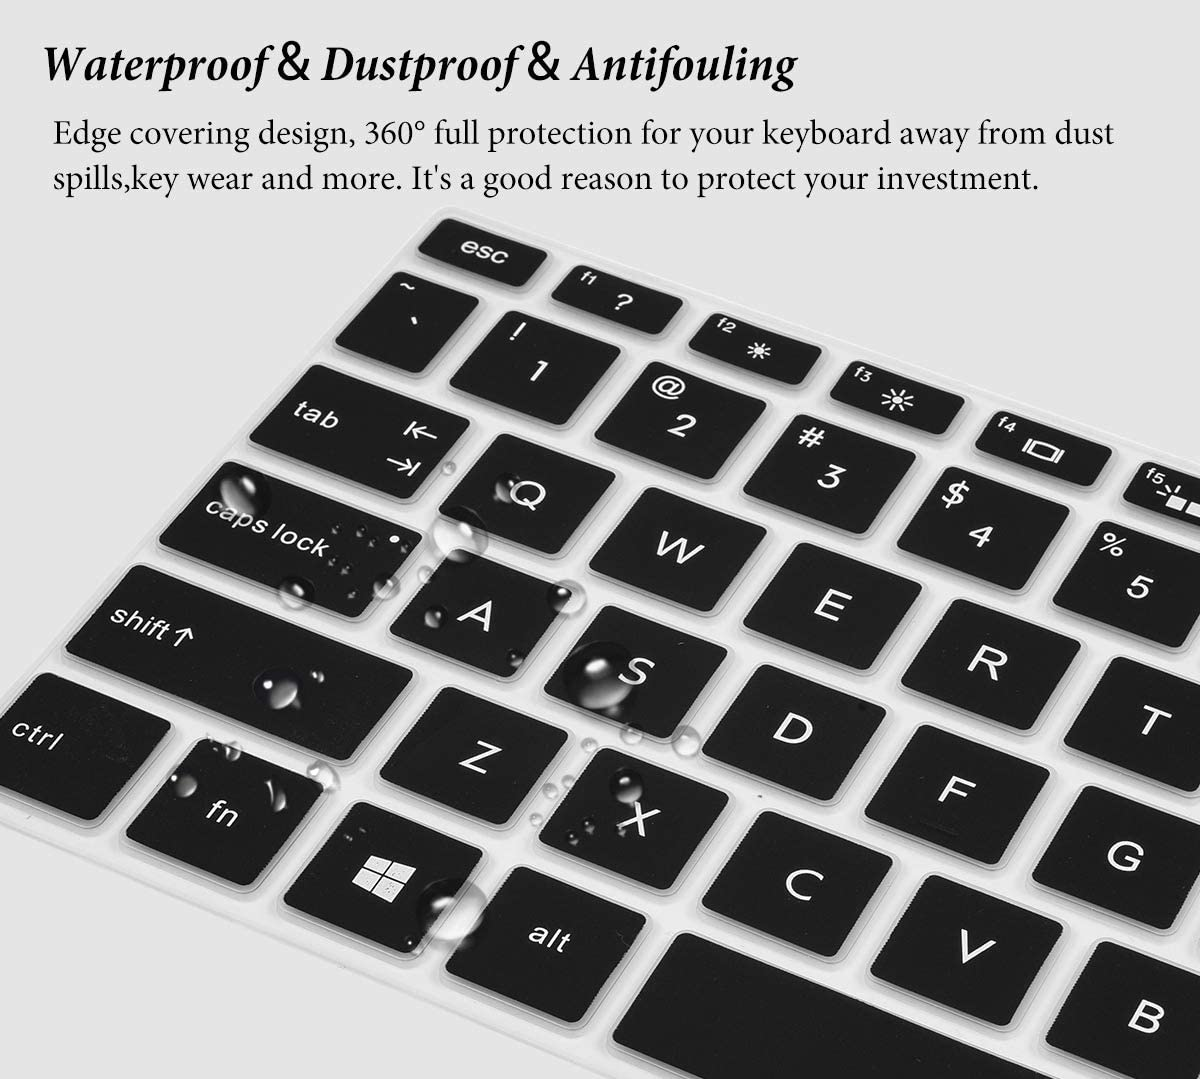 Black 2018 HP Envy 15.6 Laptop Keyboard Cover Protector for 2019 2018 New HP Envy x360 15.6 Laptop 2018 HP Envy 17.3 Laptop//HP Spectre x360 15-CH011DX Keyboard Protective Skin